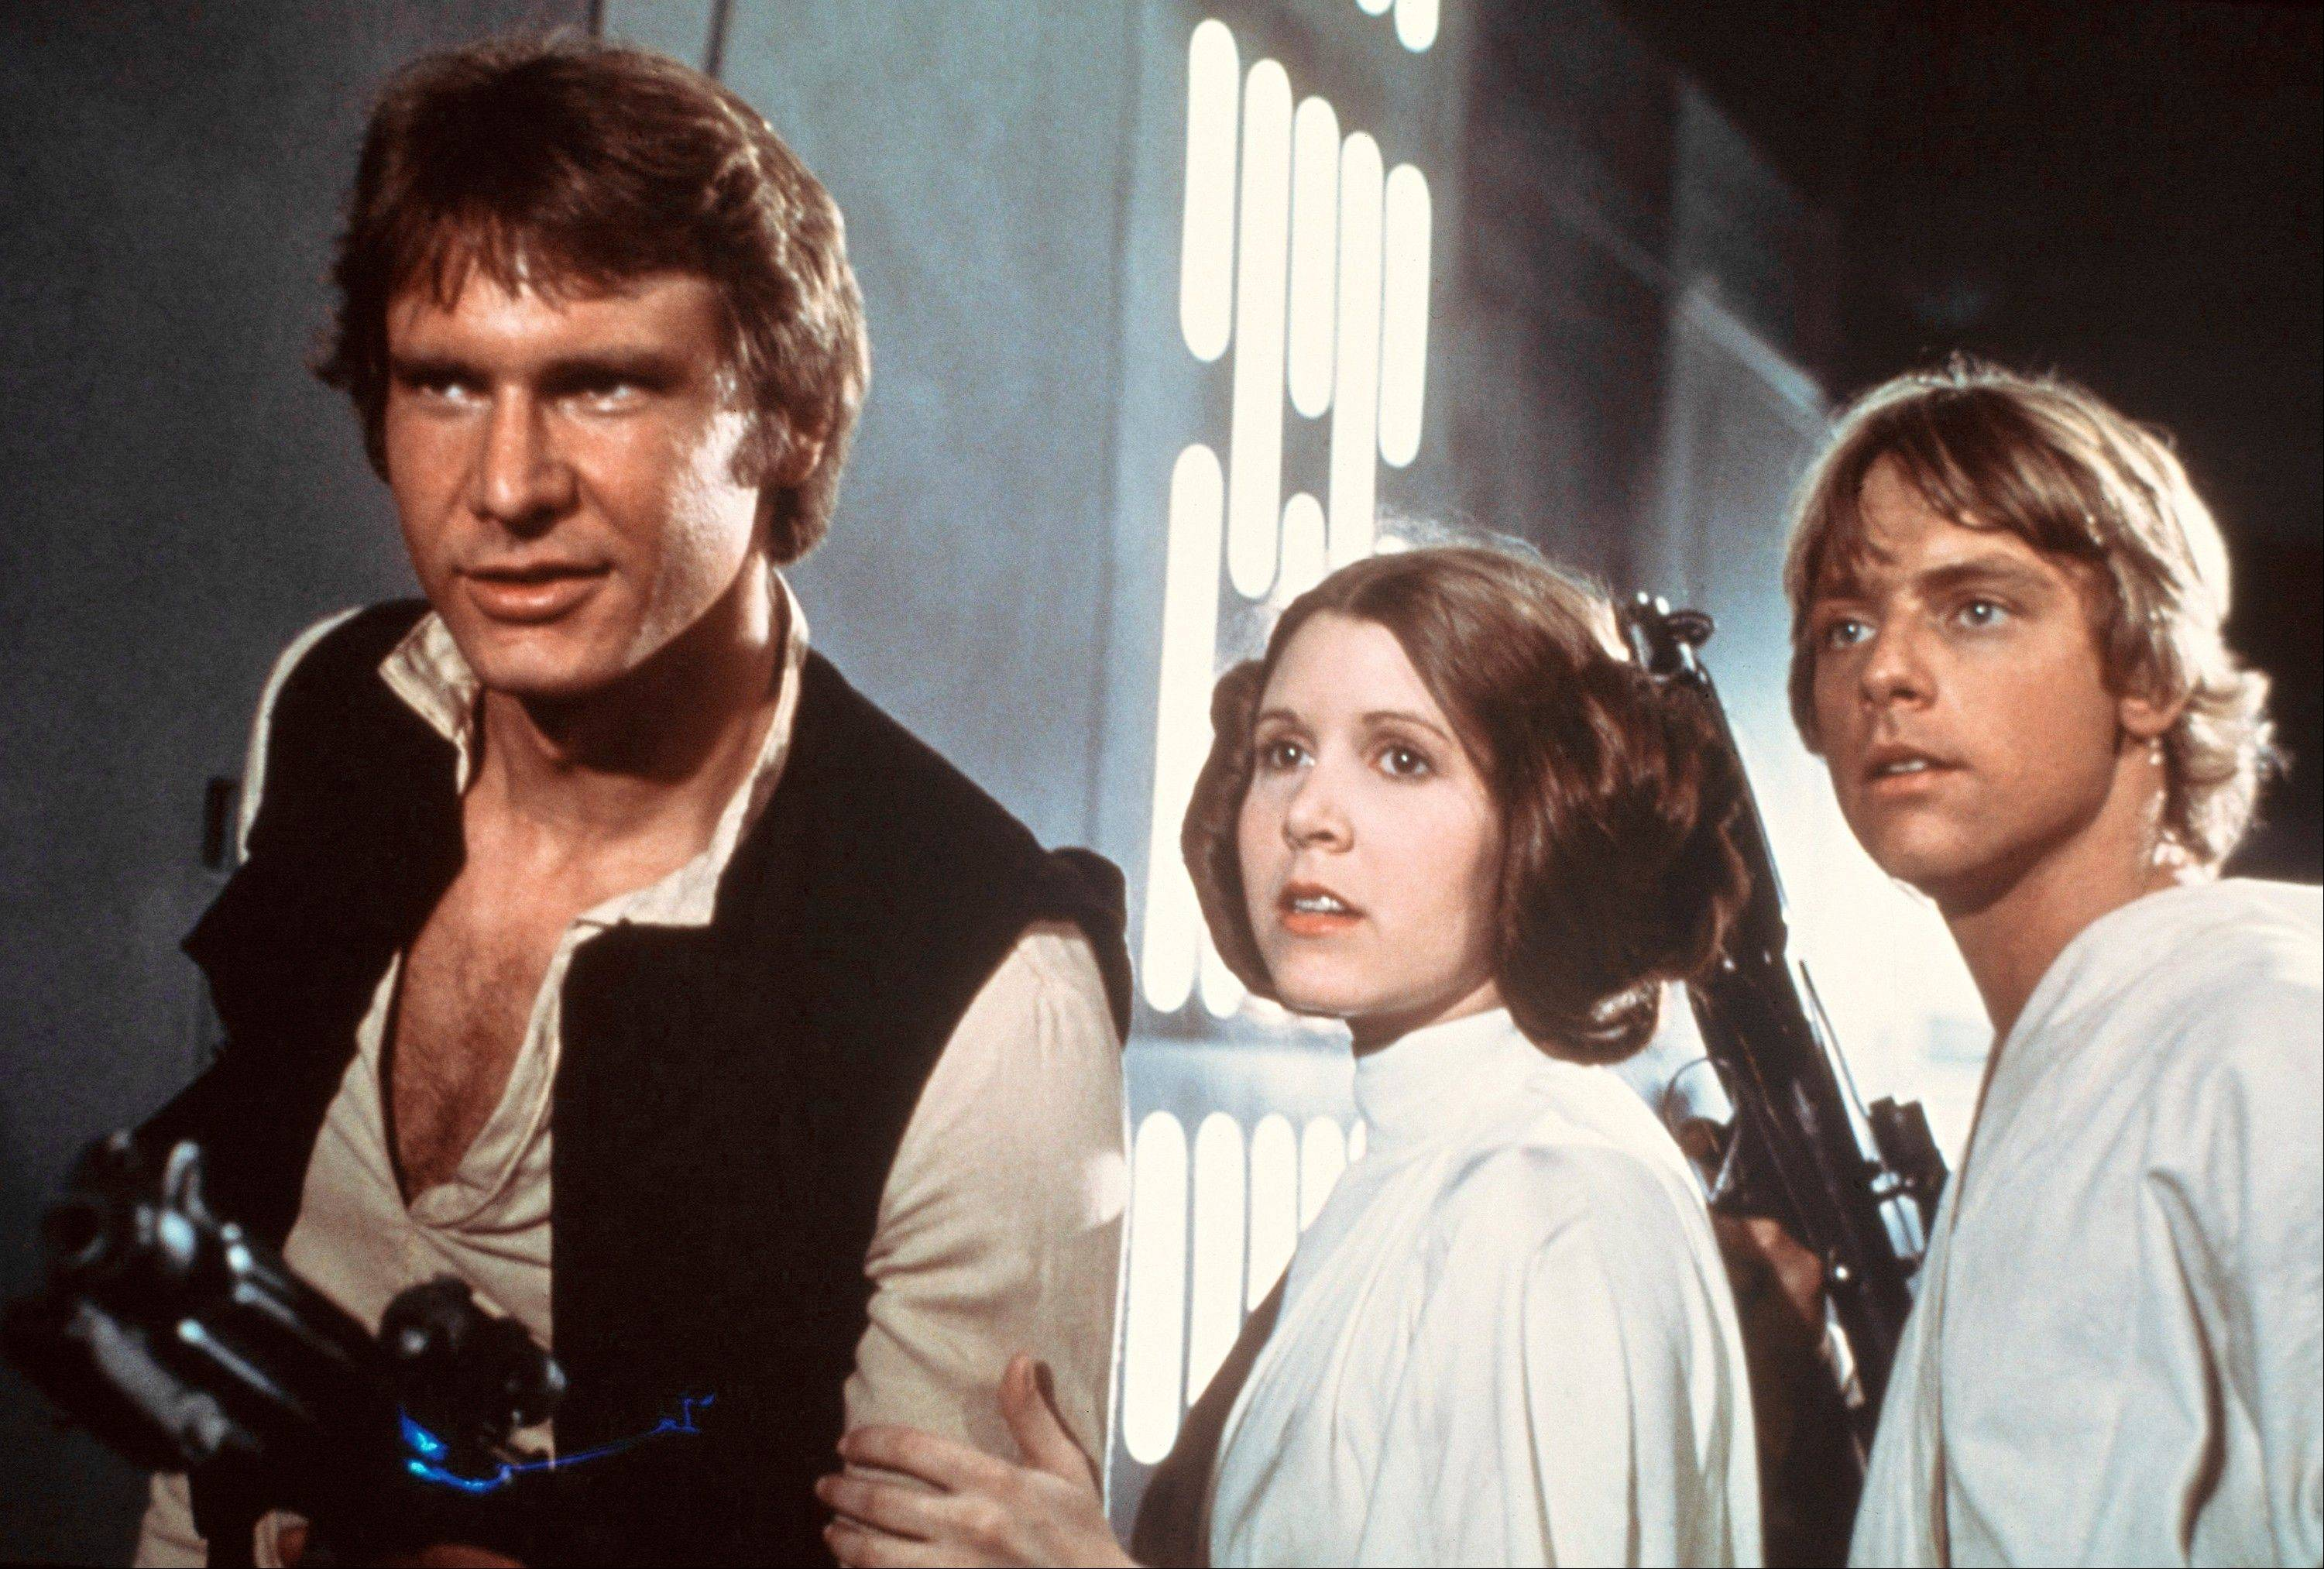 Associated Press Harrison Ford as Han Solo, Carrie Fisher as Princess Leia Organa and Mark Hamill as Luke Skywalker in a scene from �Star Wars.�